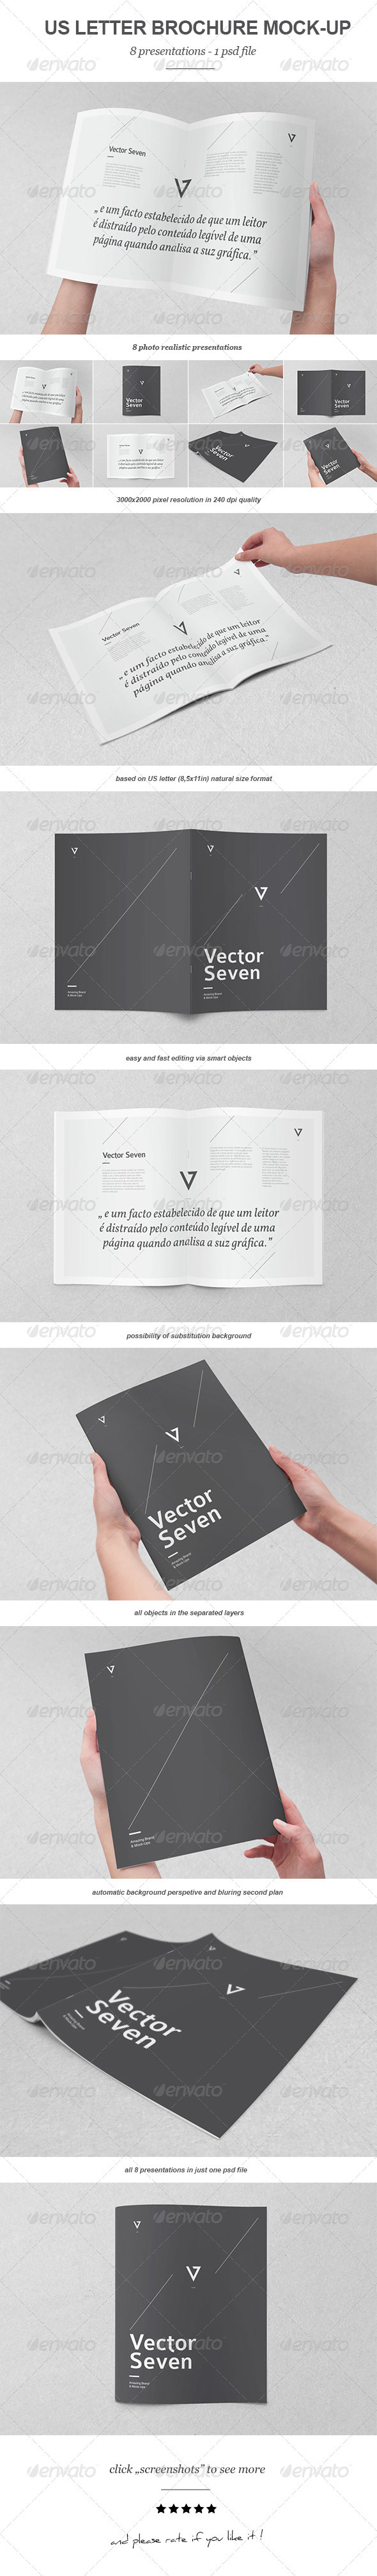 GraphicRiver US Letter Brochure Mock-up 3457163